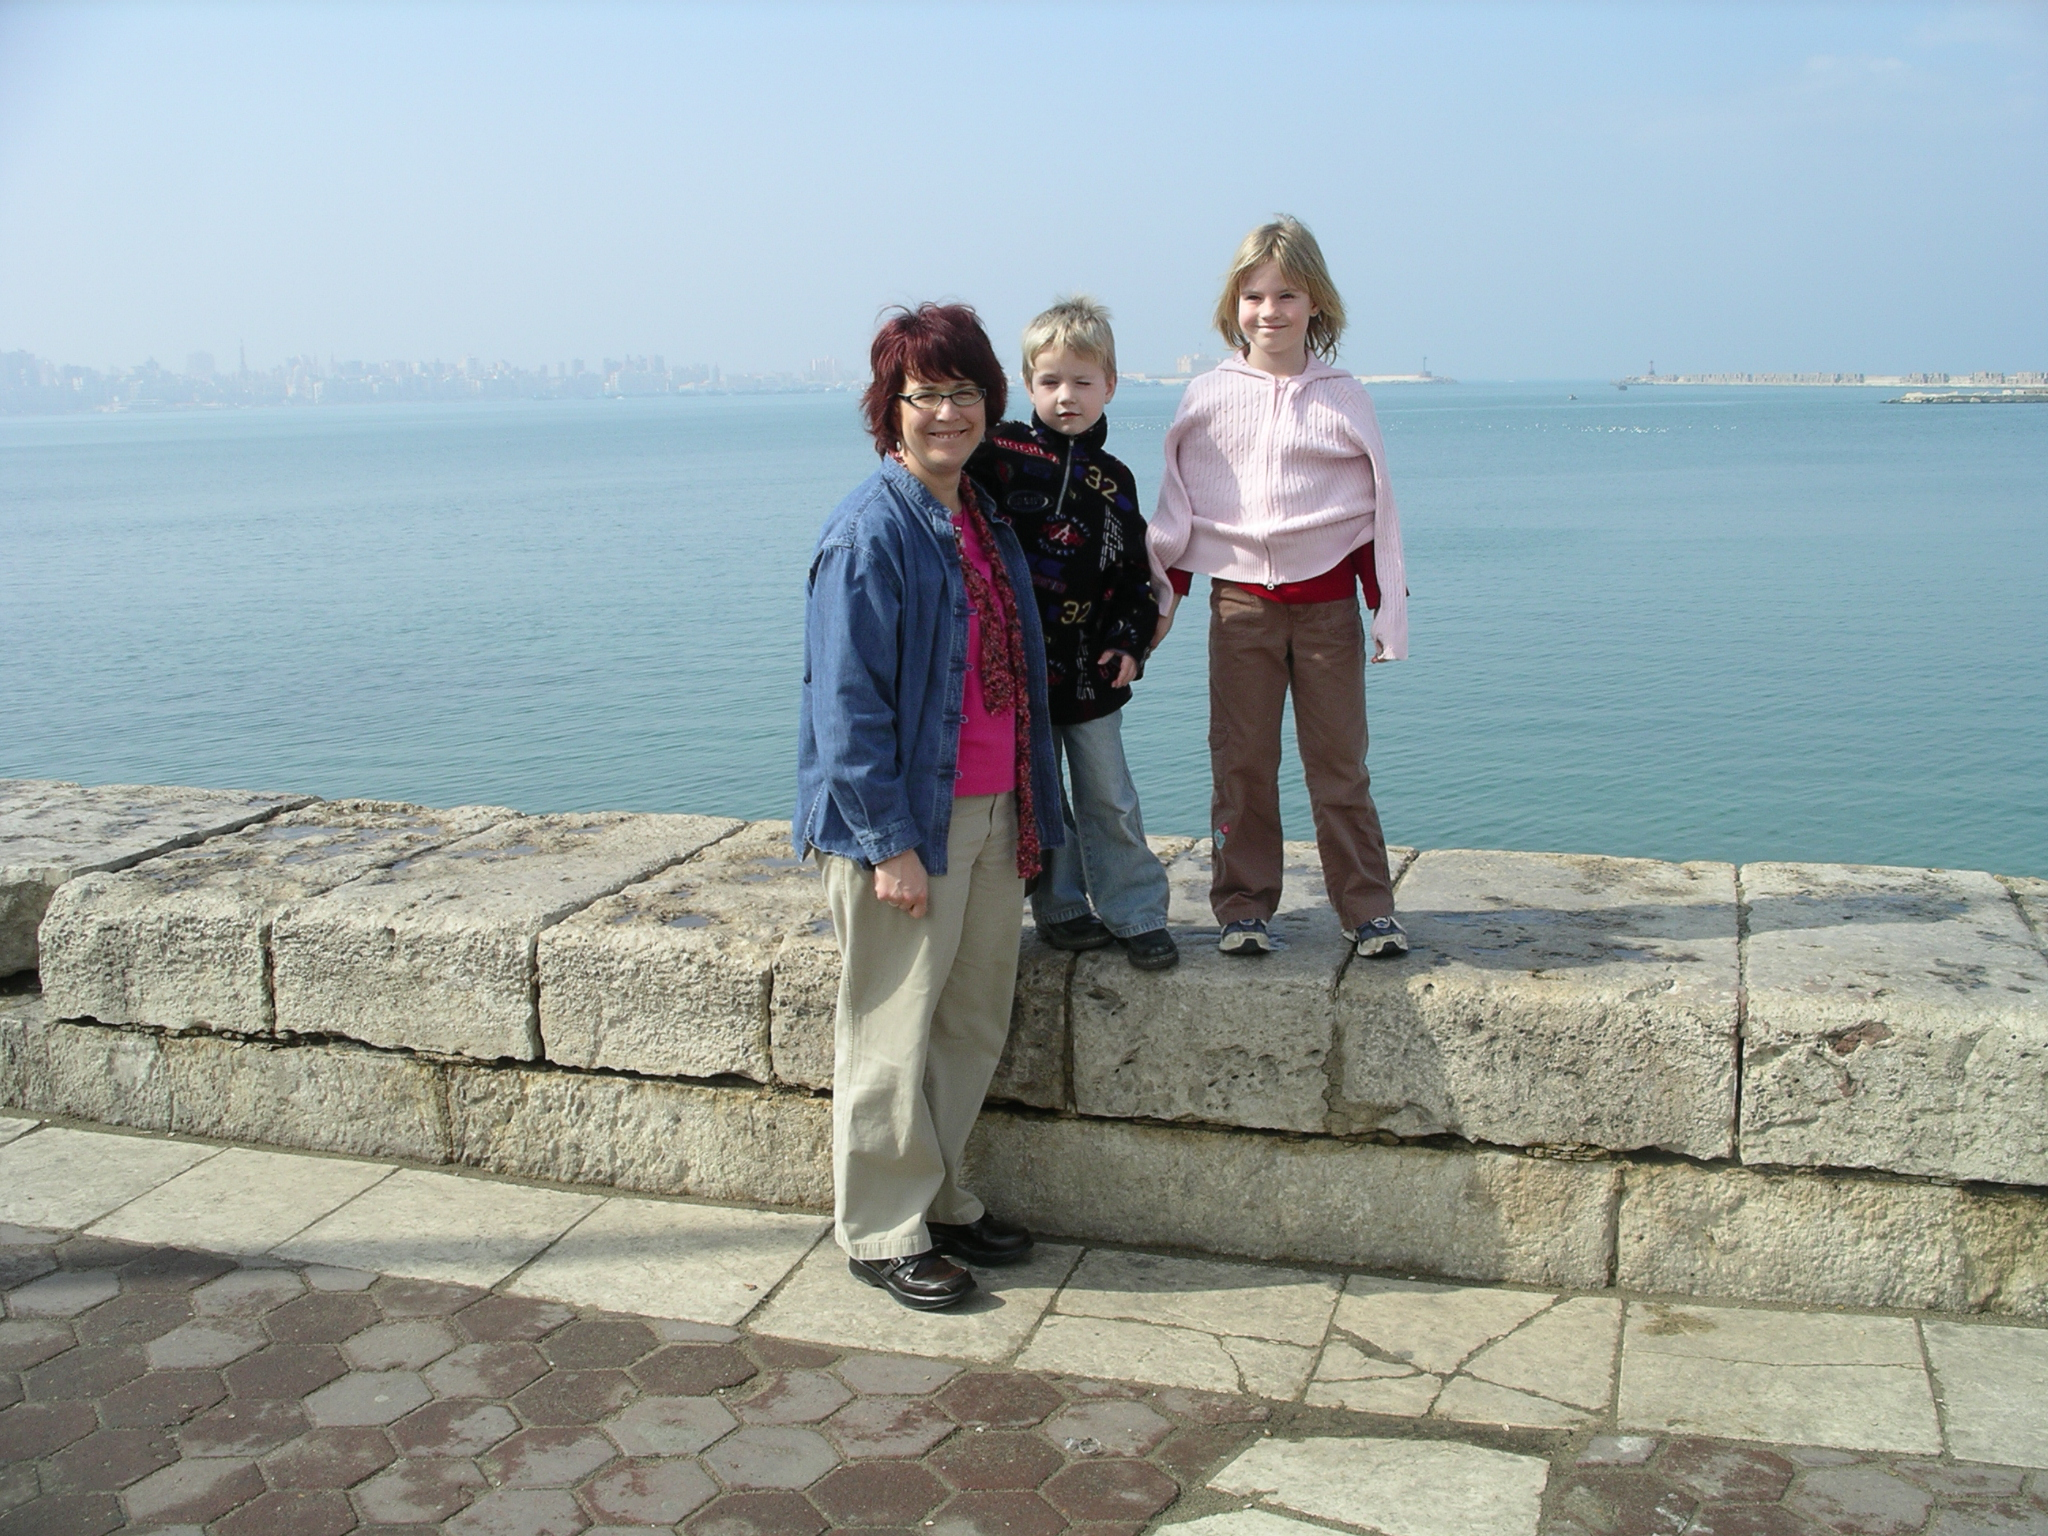 I love this pic! We had recently moved to Cairo, Egypt in 2007 and were visiting Alexandria.